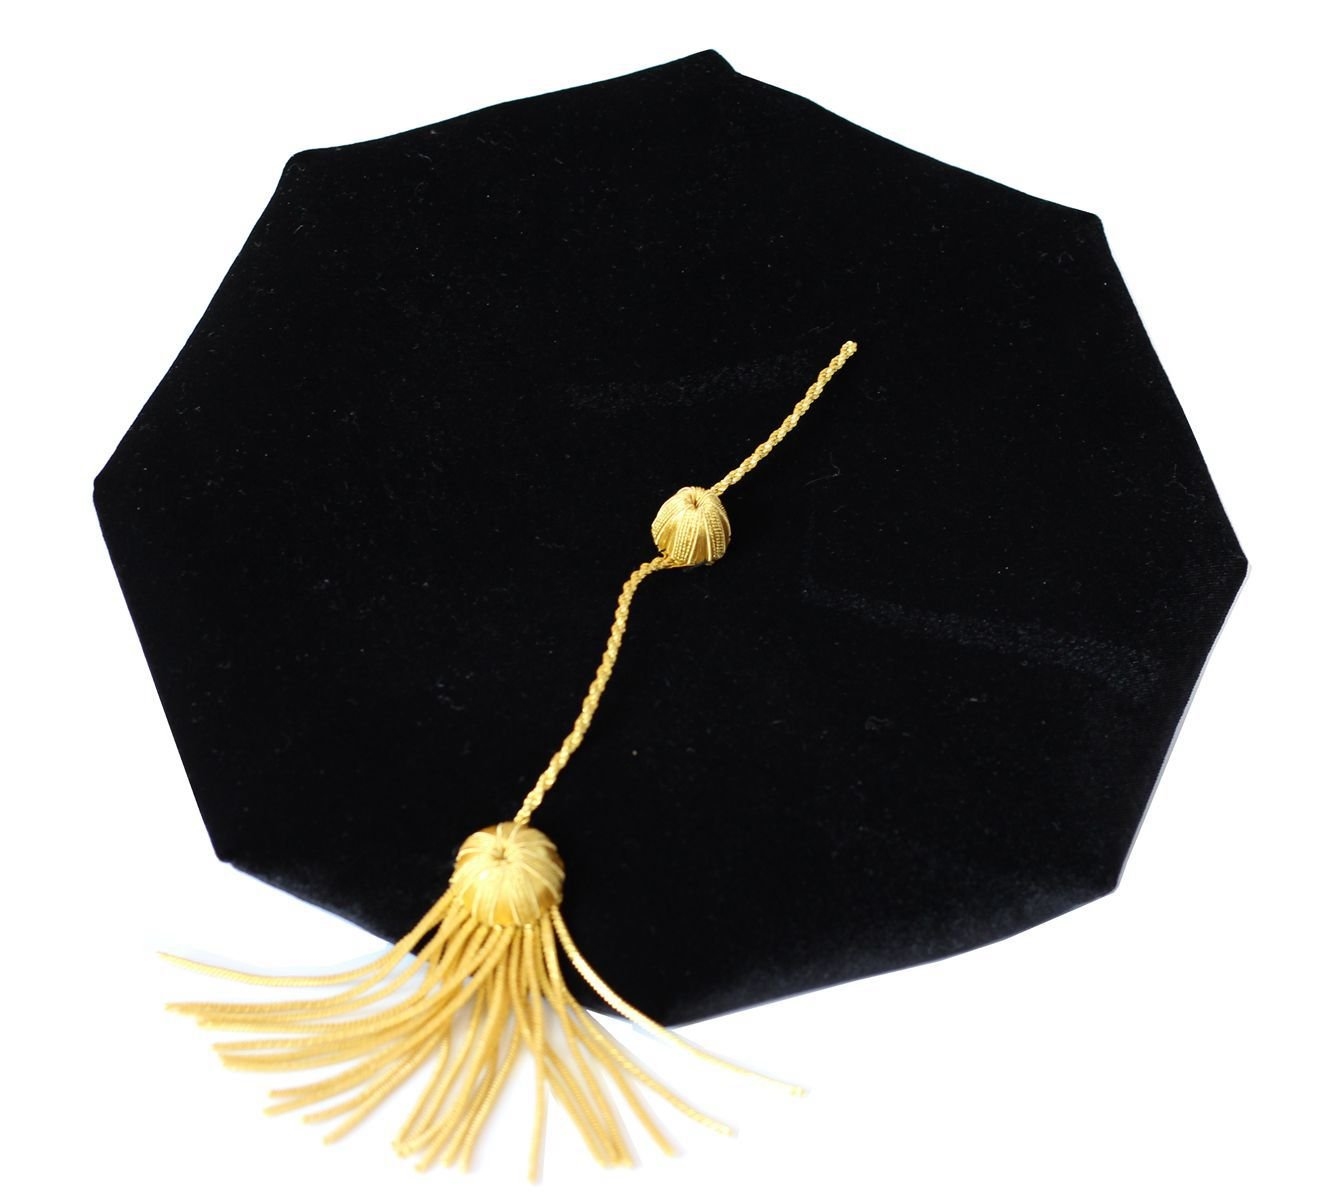 lescapsgown Deluxe Doctoral Graduation Gown Hood and Tam 8Sided Package Size 54 by lescapsgown (Image #4)